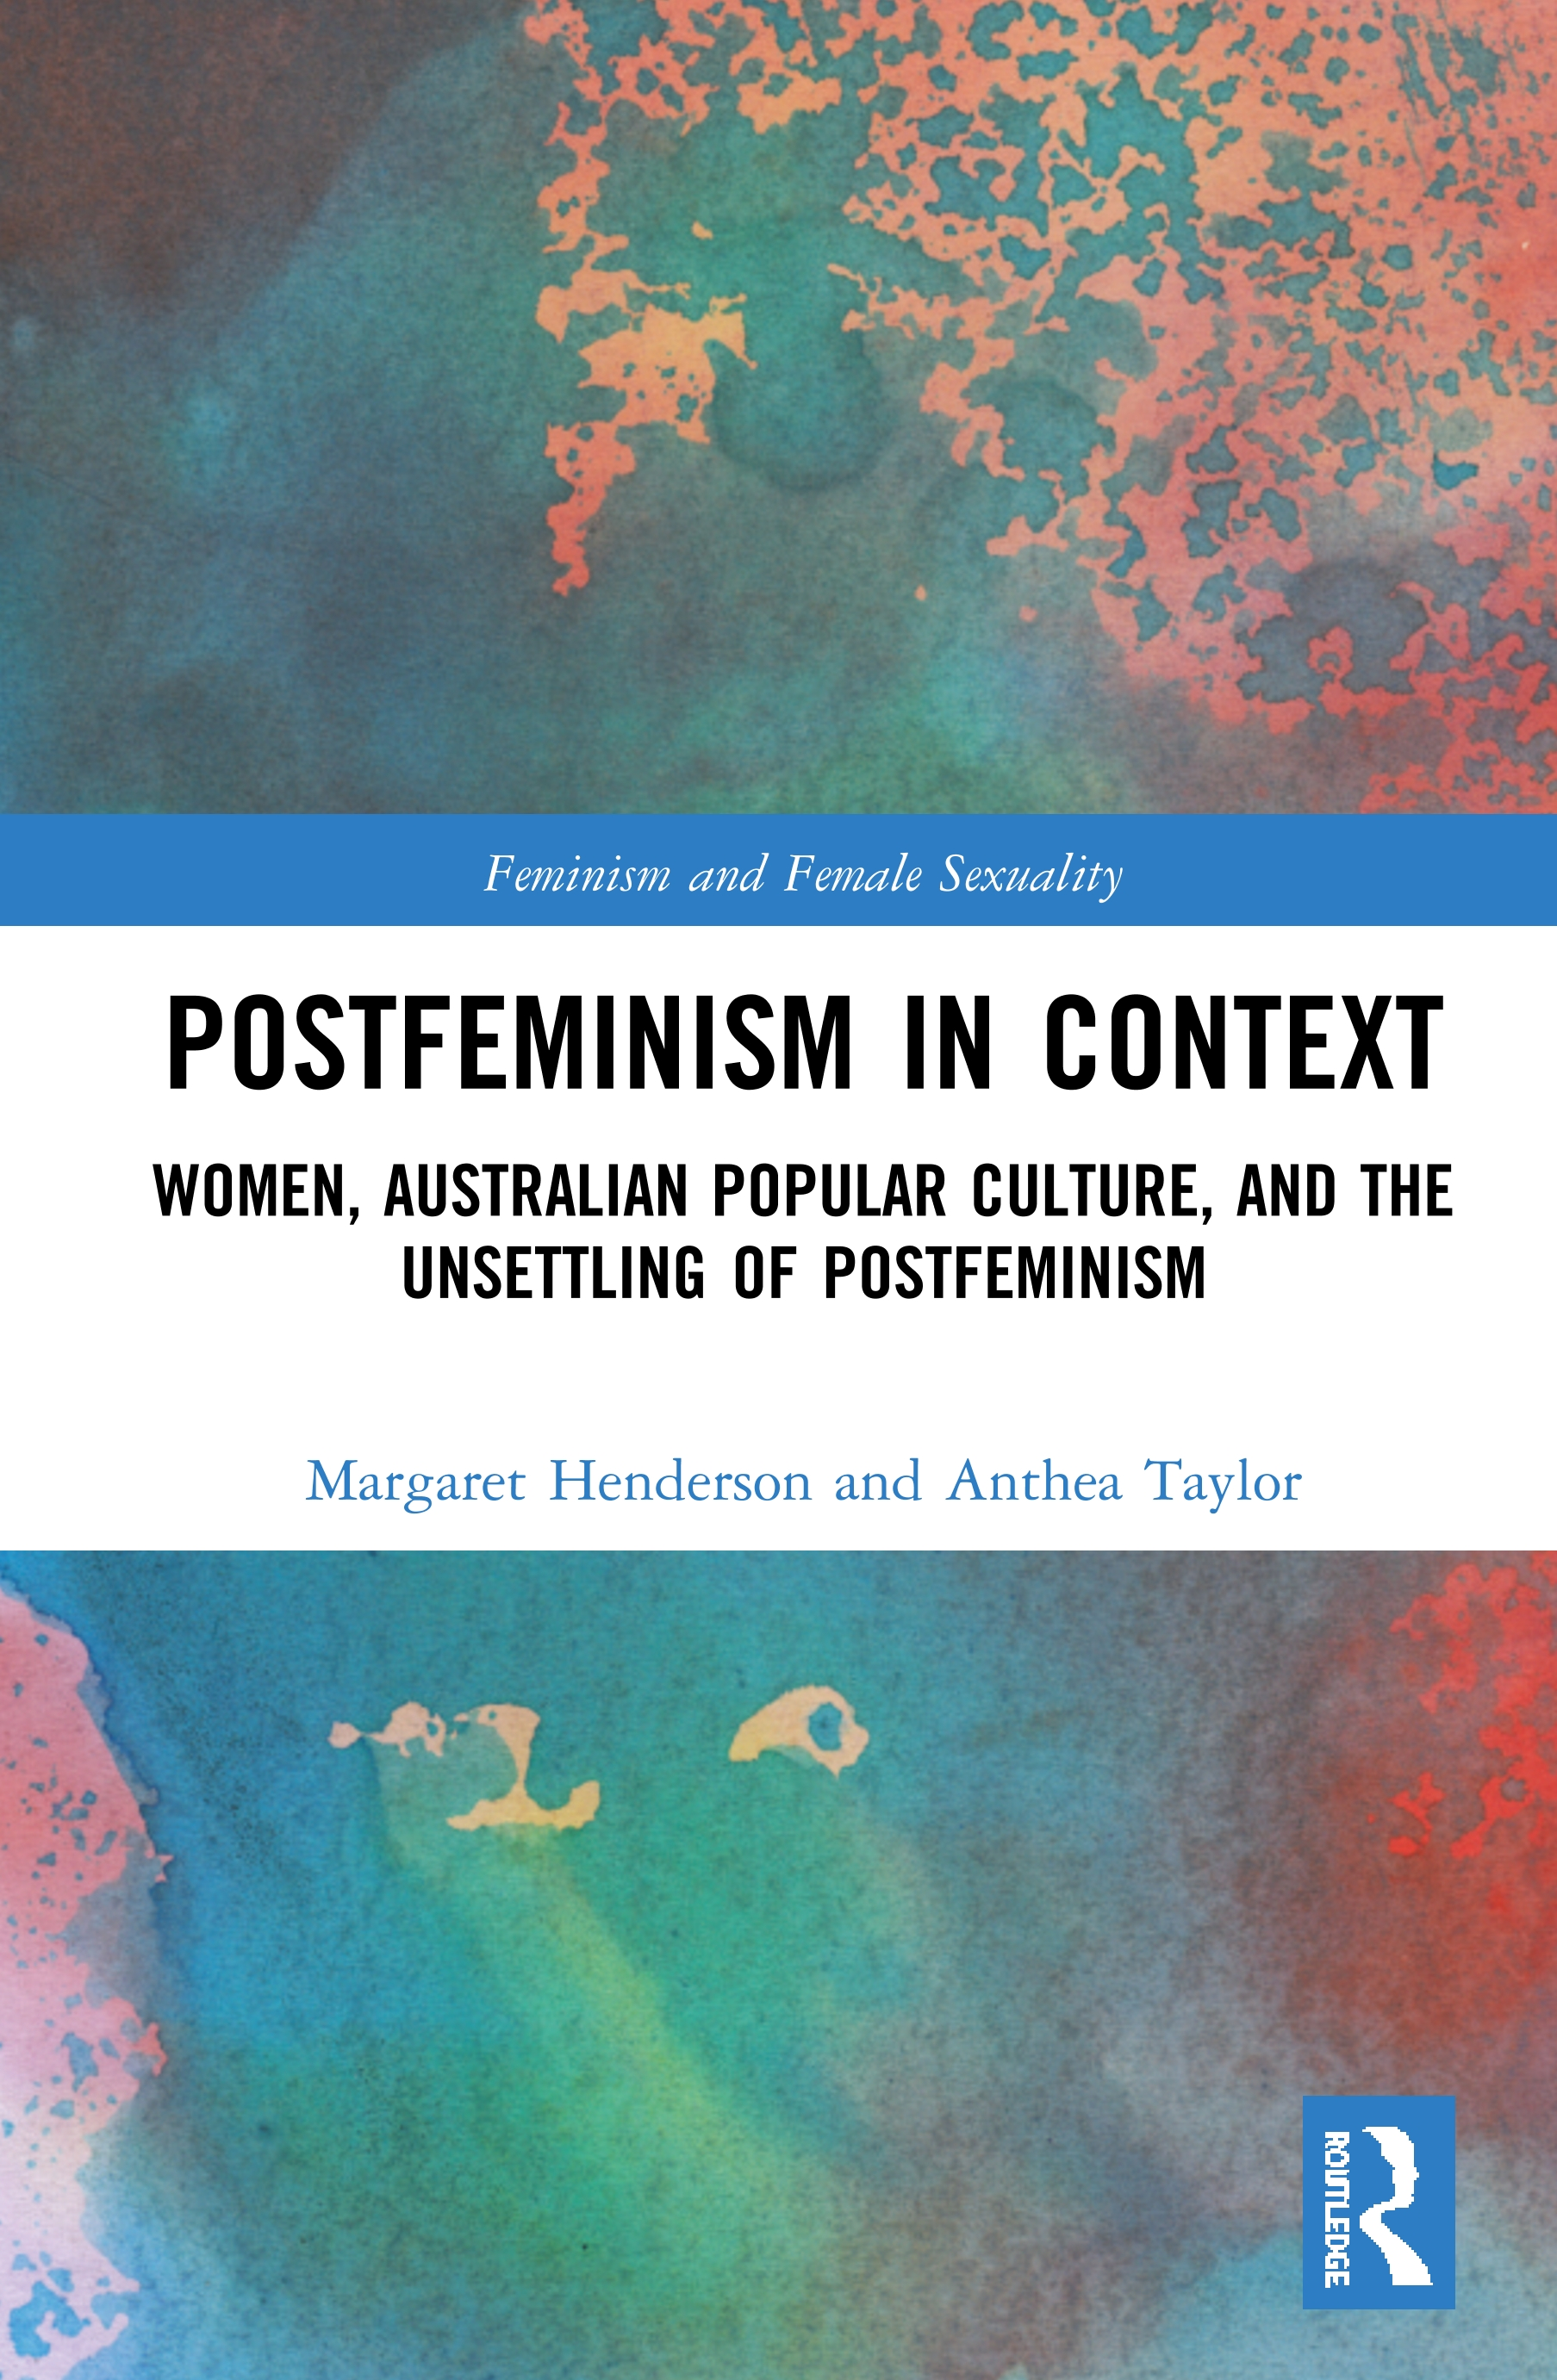 Postfeminism in Context: Women, Australian Popular Culture, and the Unsettling of Postfeminism book cover